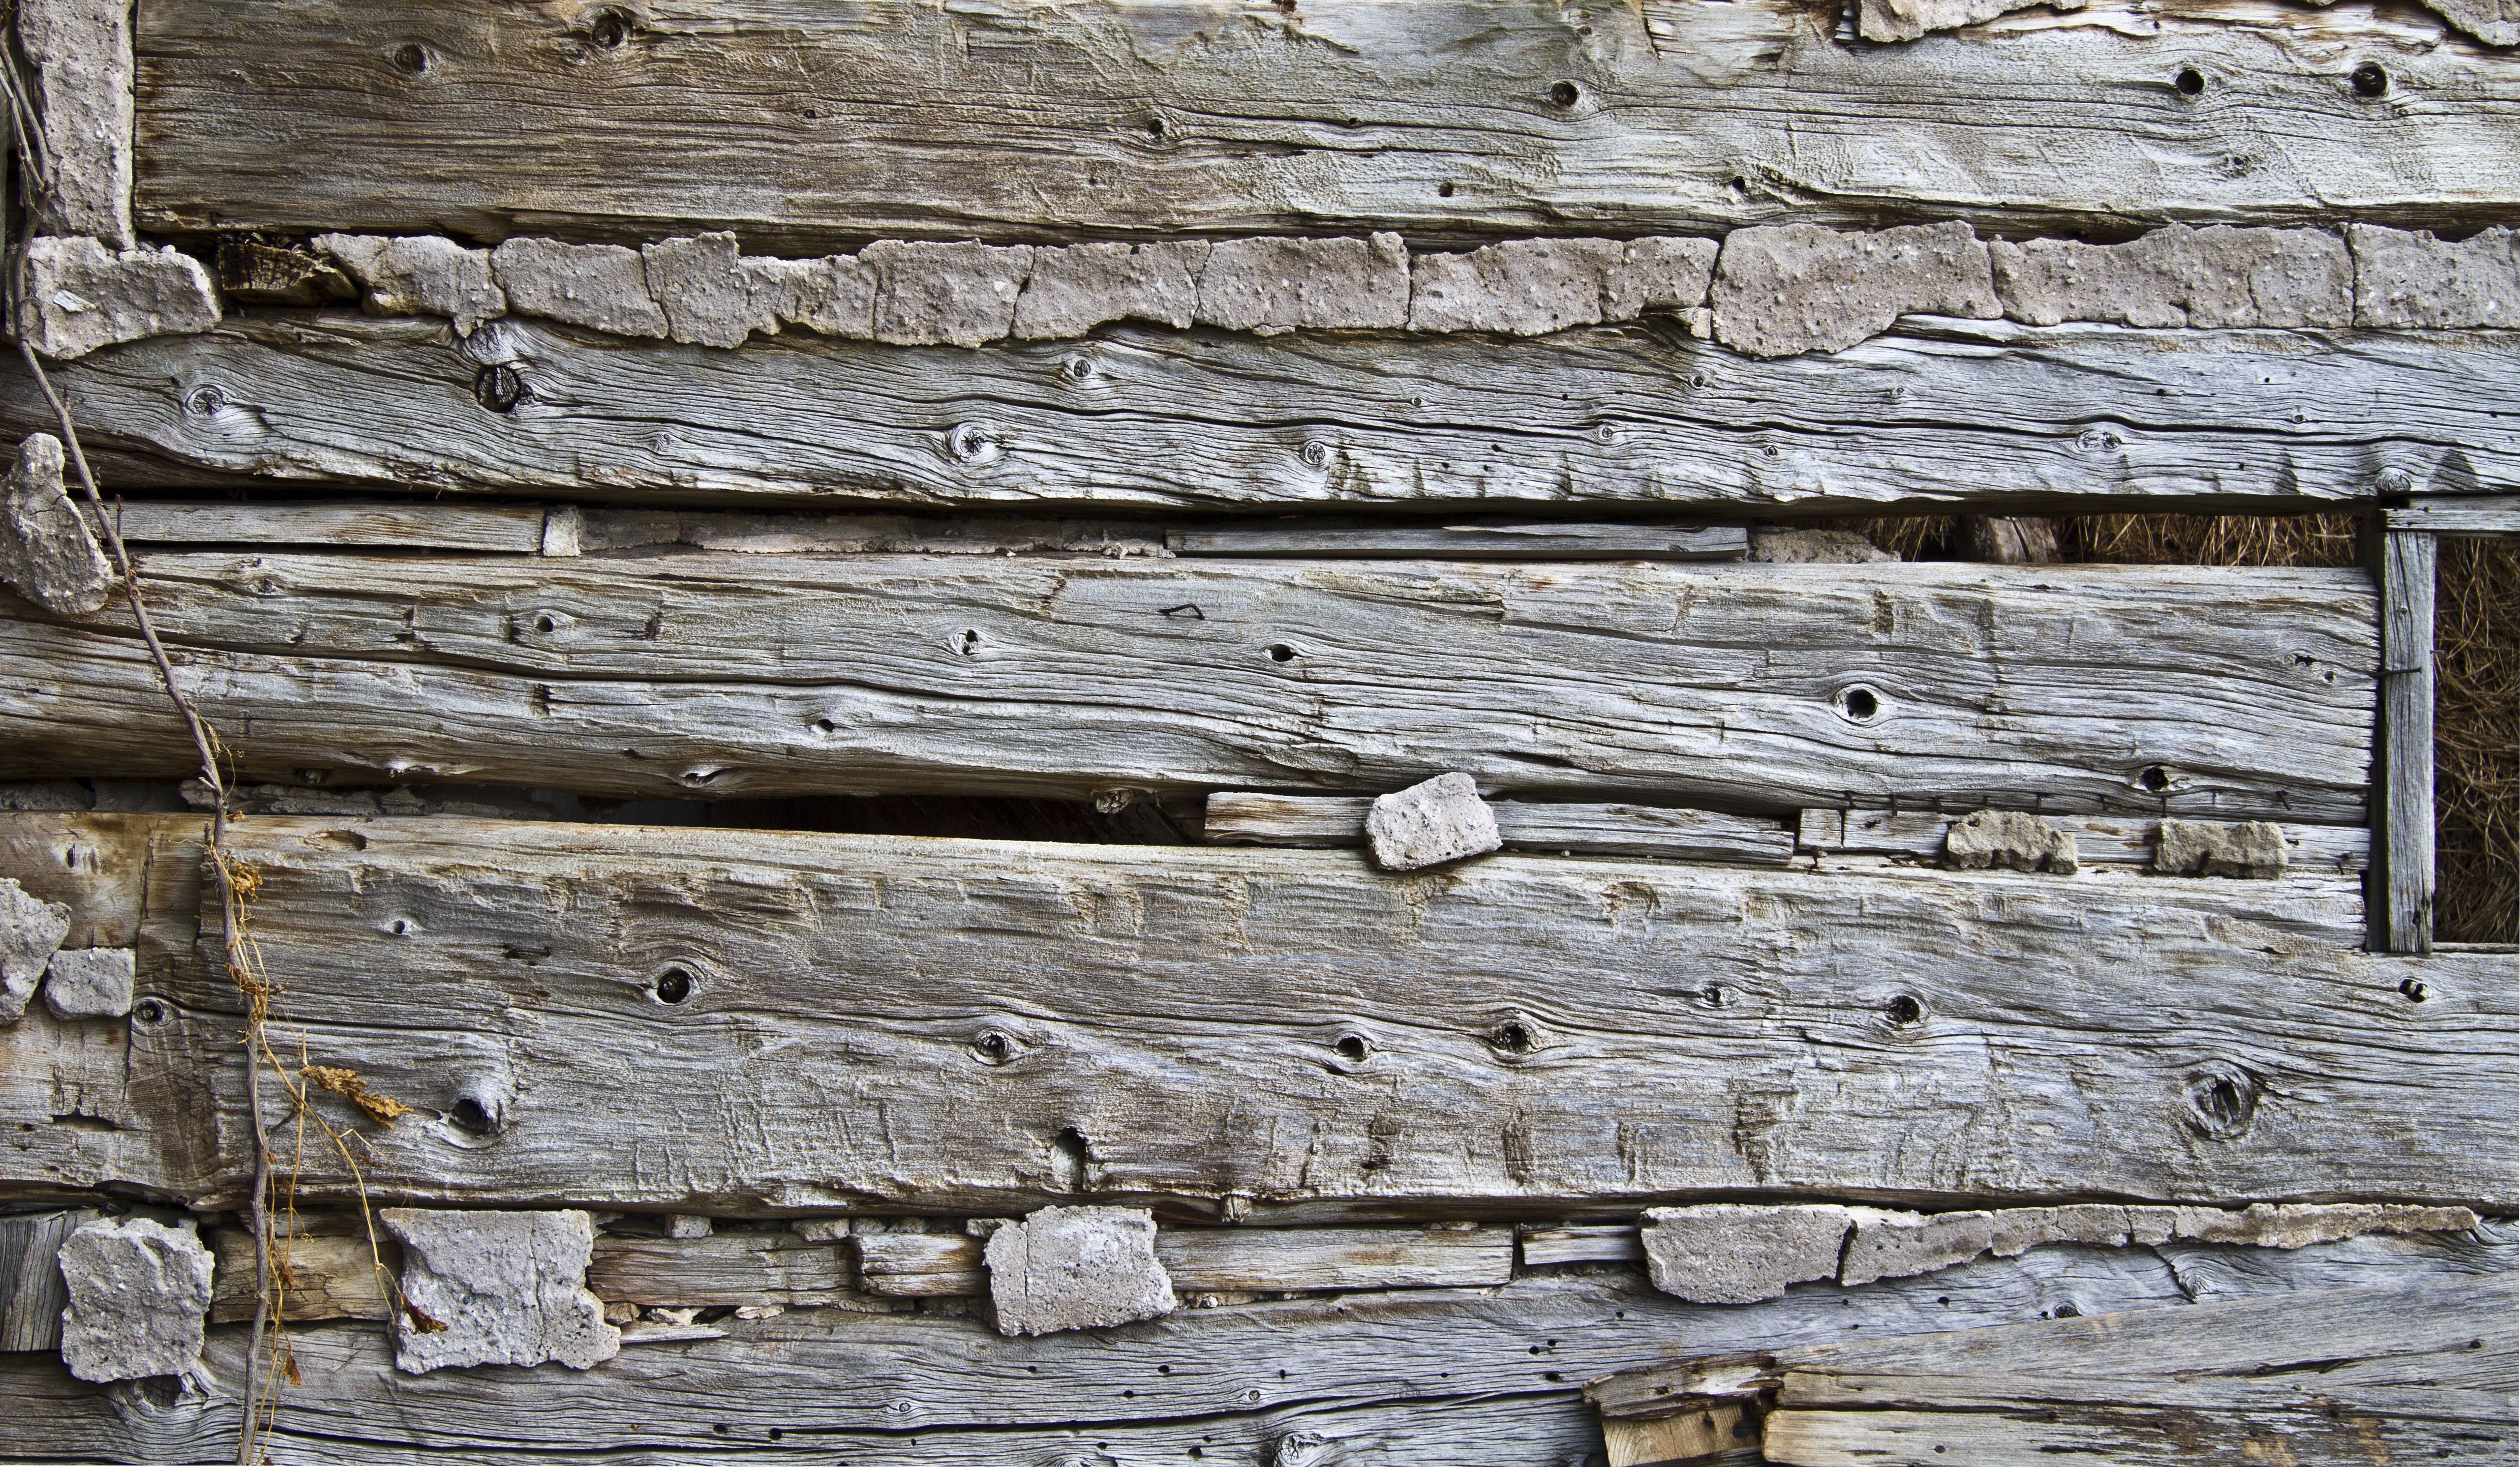 OF RULES AND LOGS AND FERAL DOGS | Wabi sabi and Logs